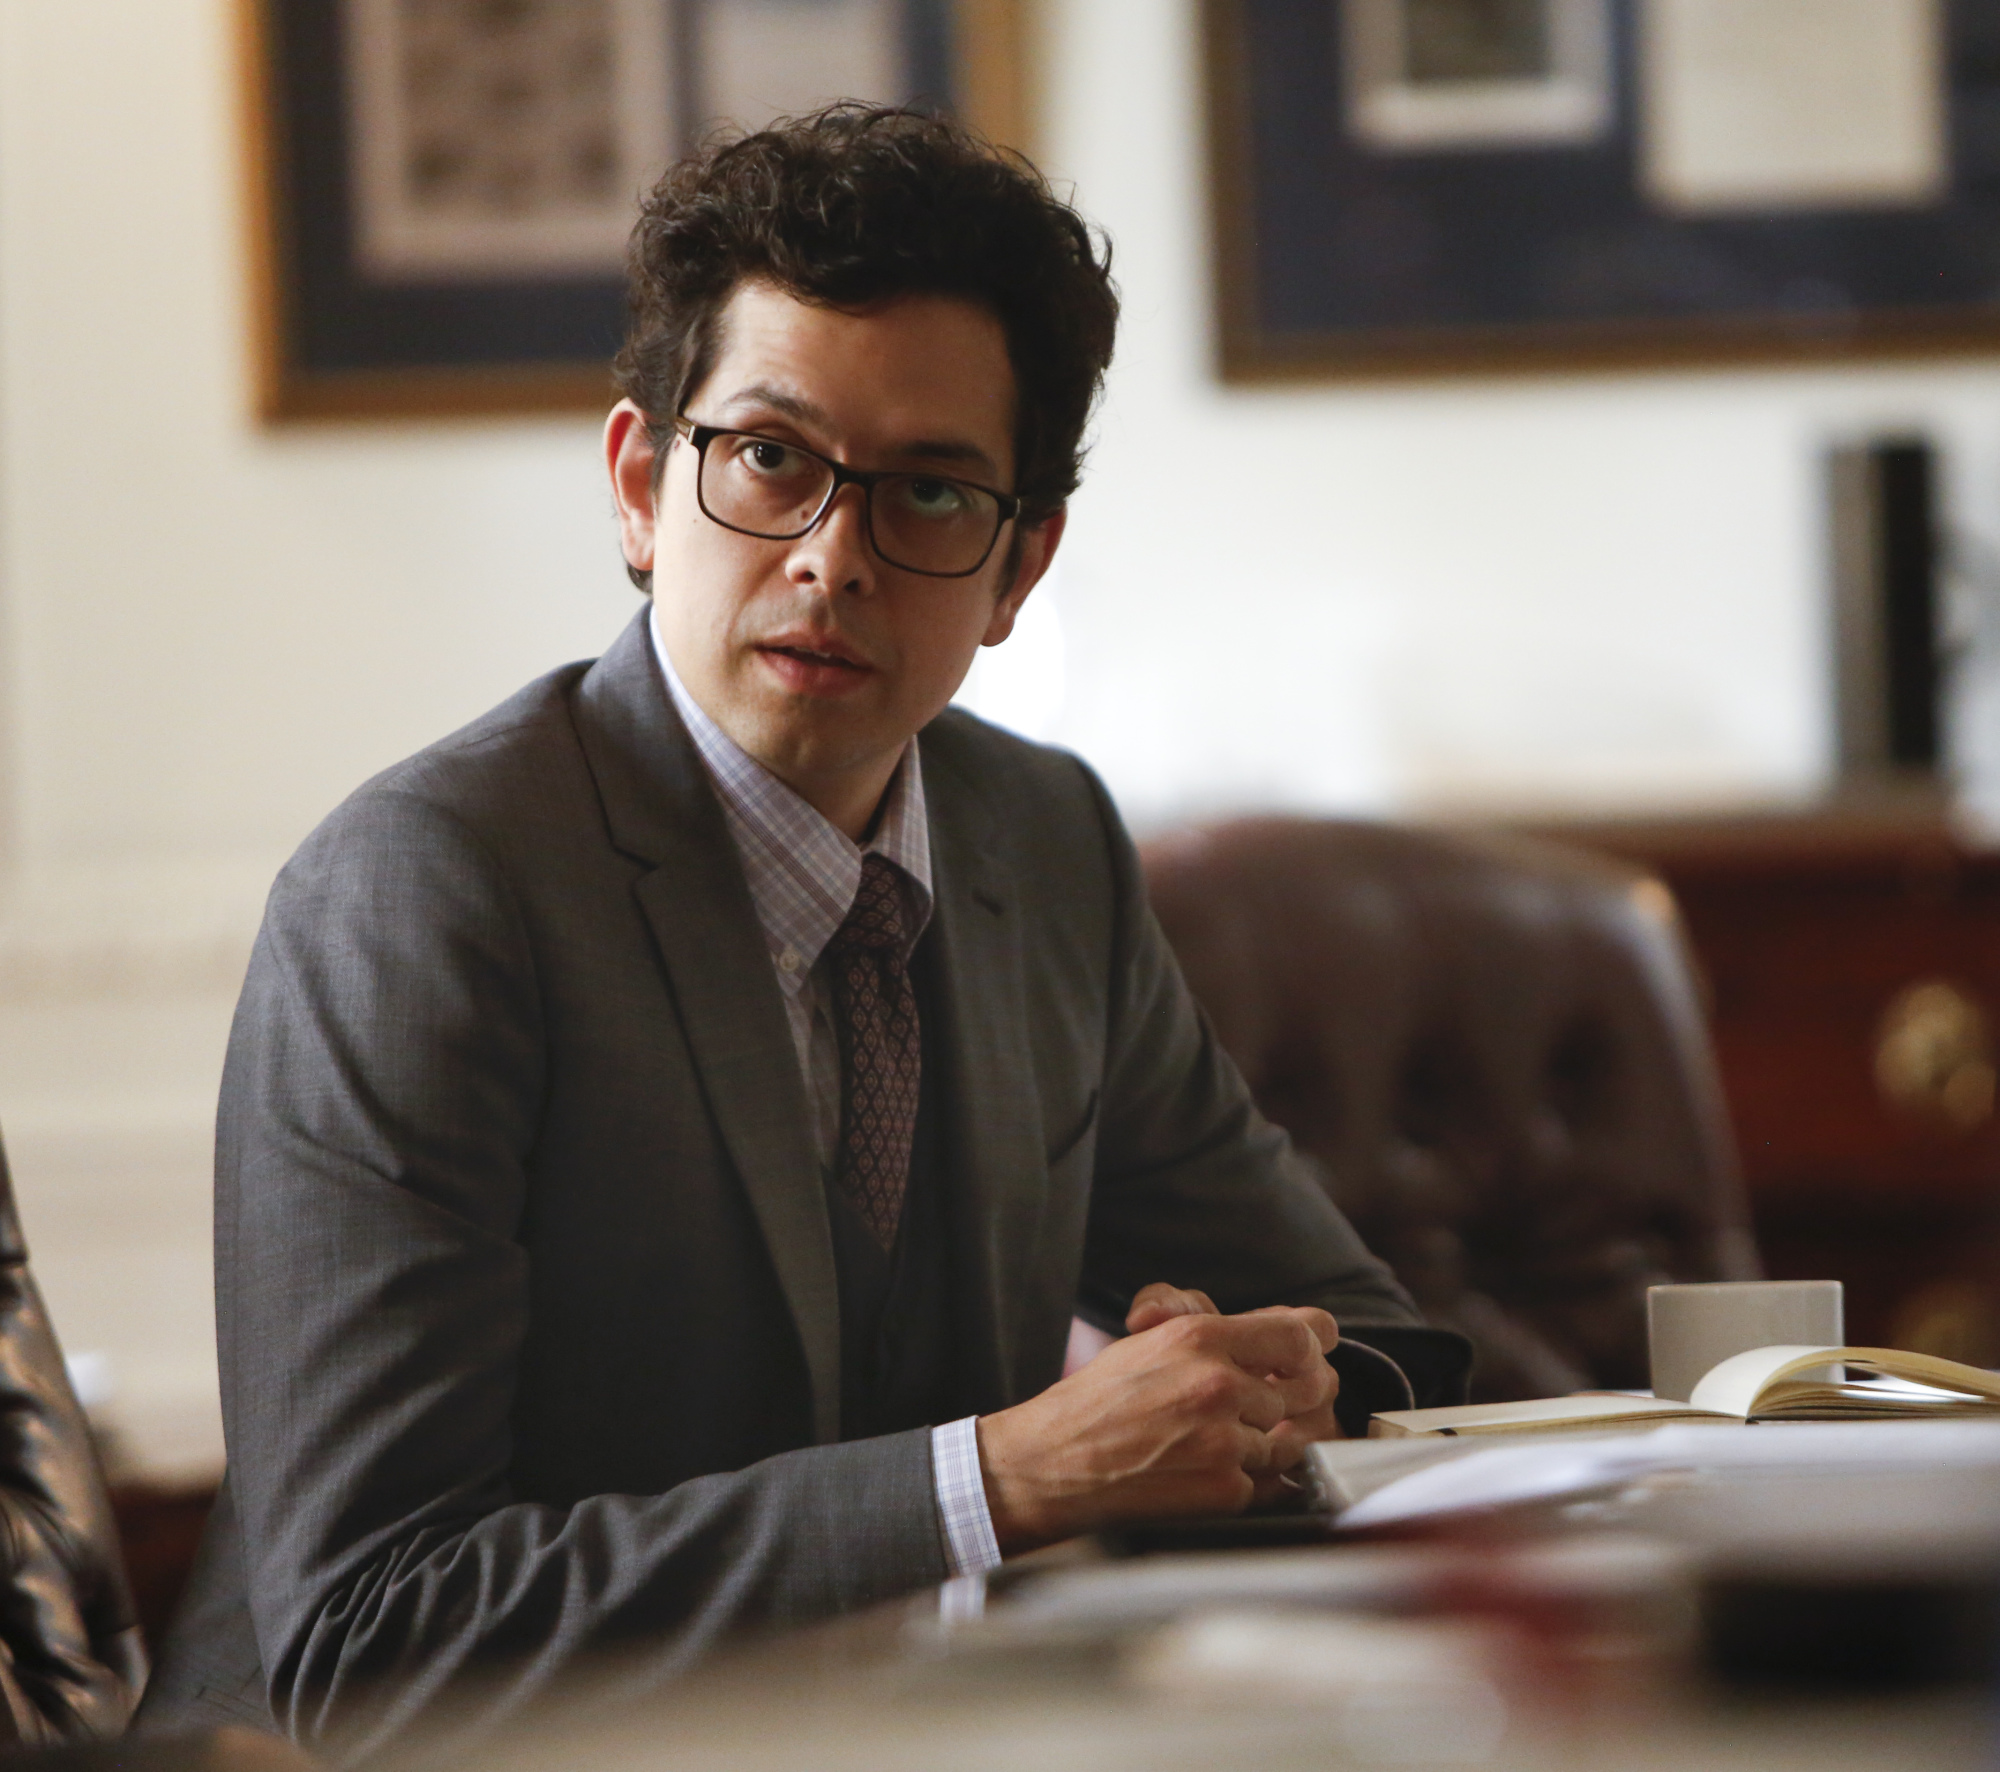 19. Geoffrey Arend is a Pisces.